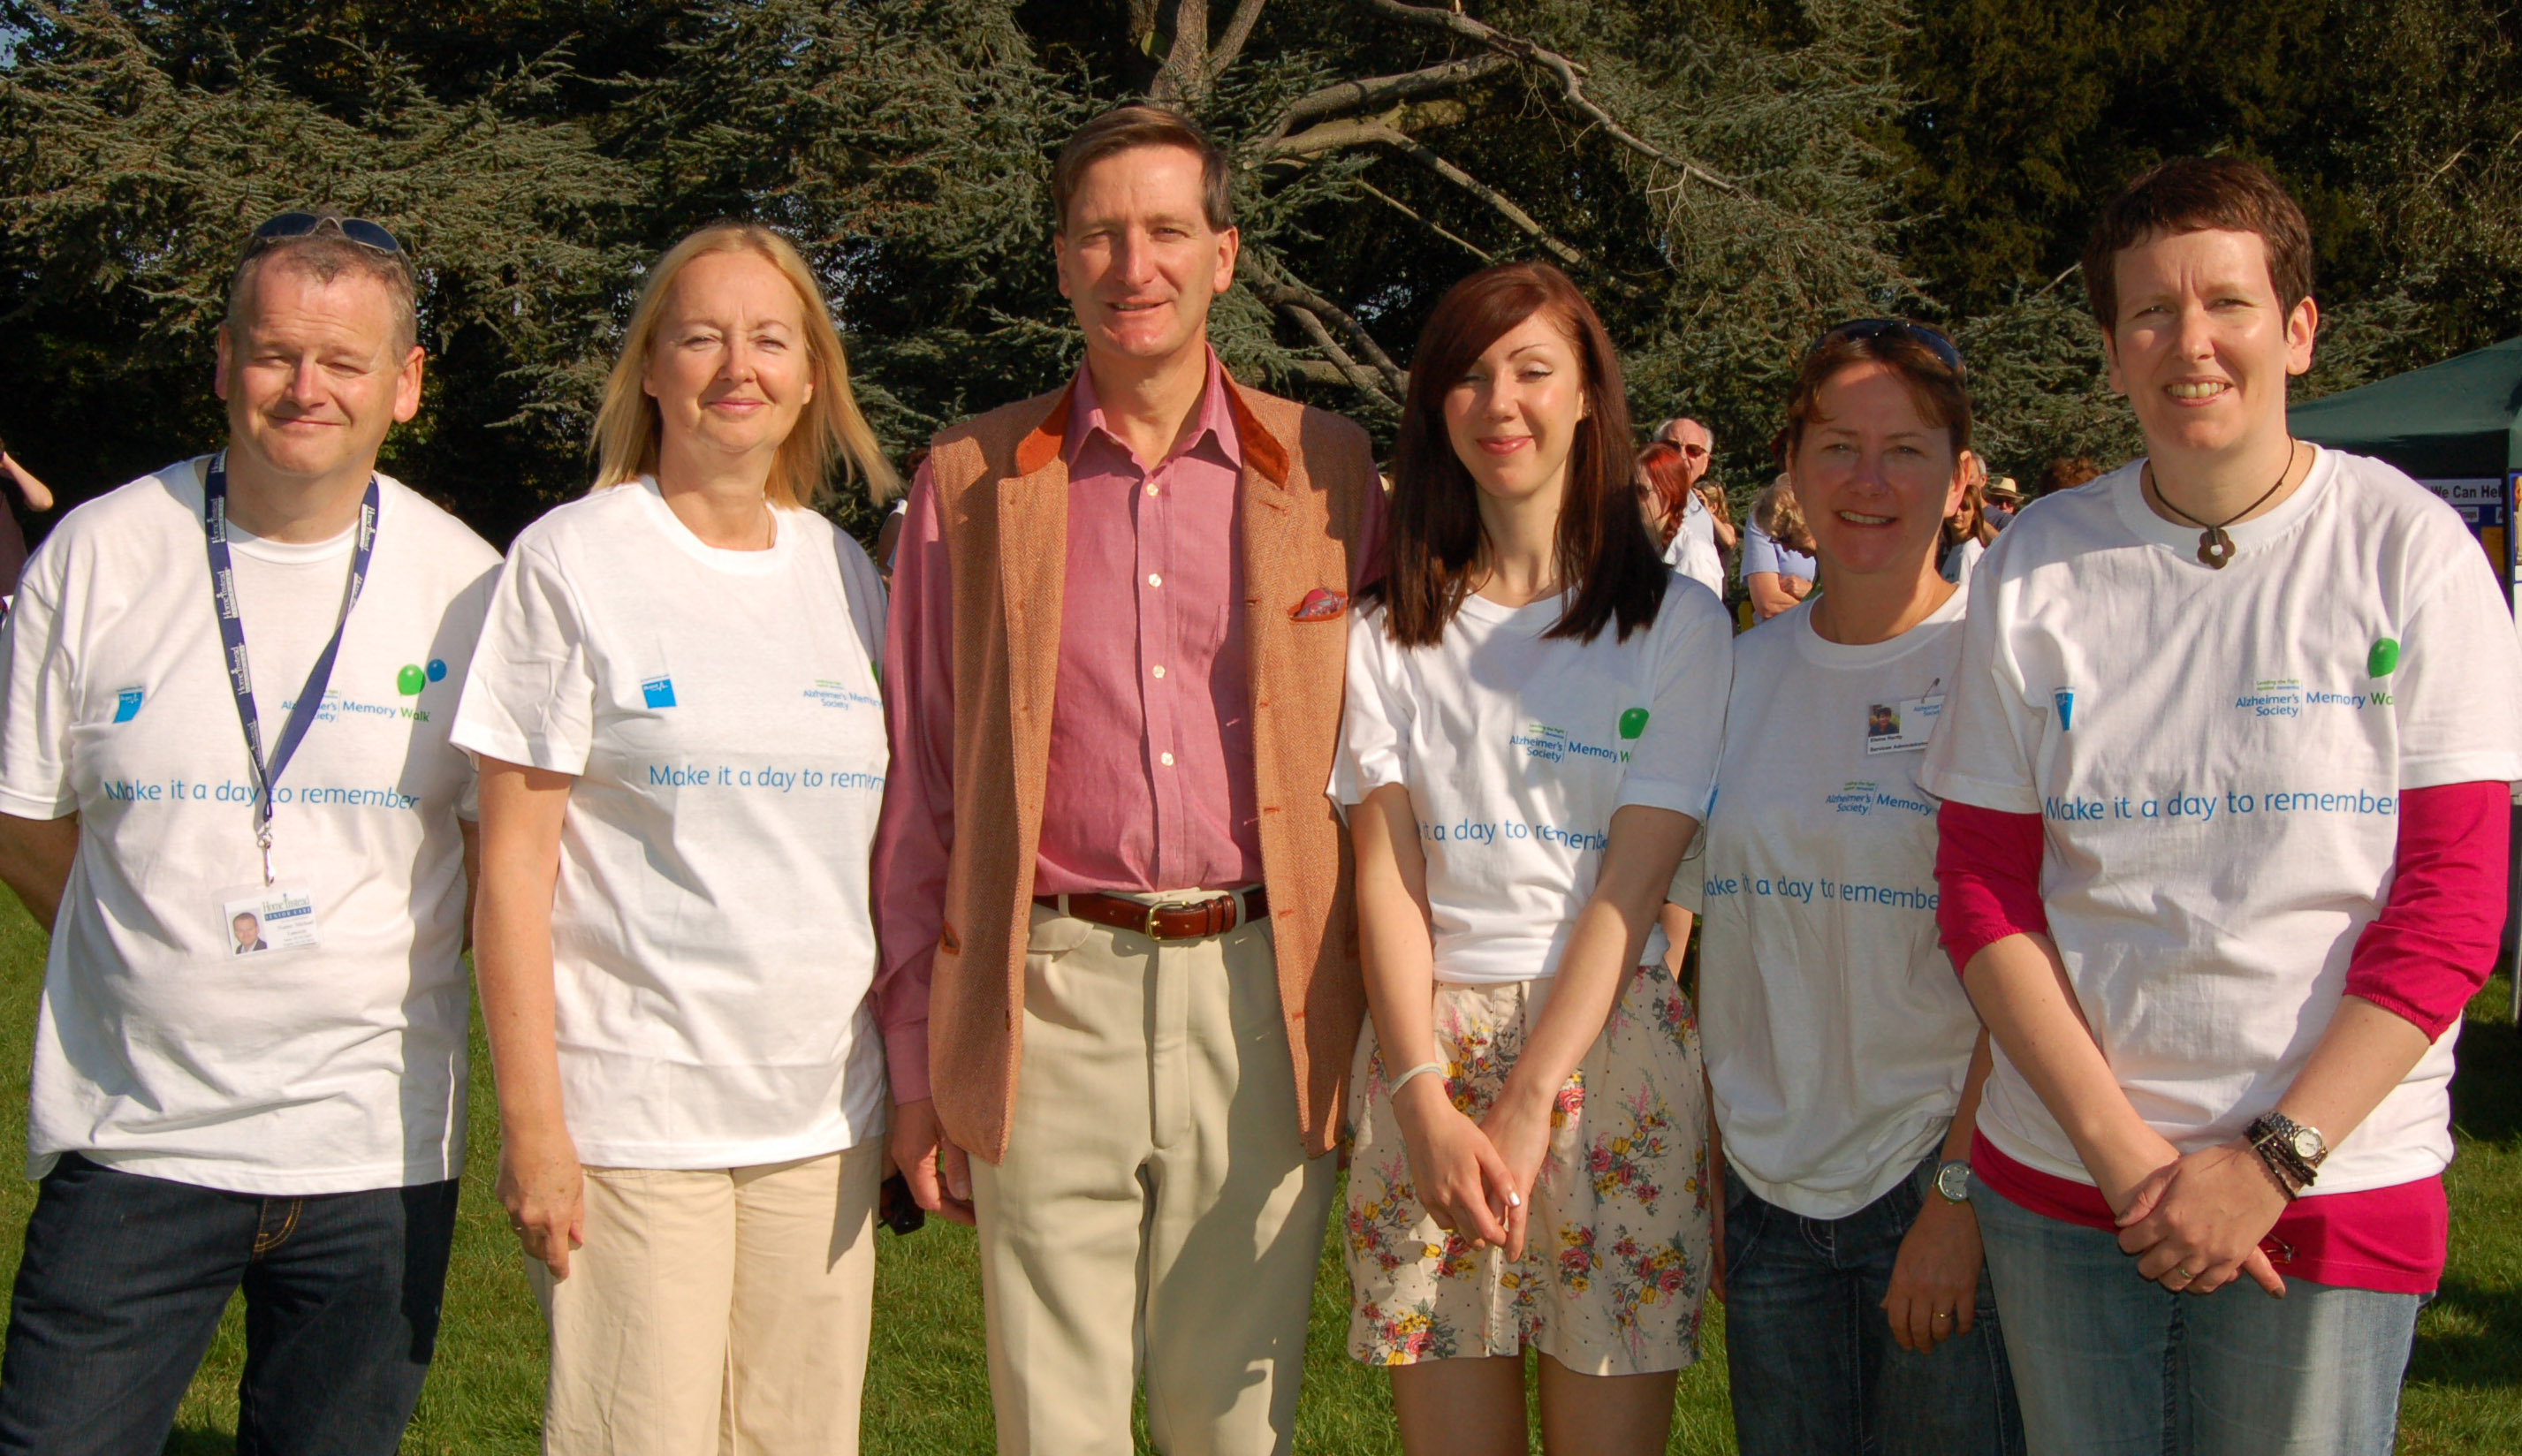 A Walk To Remember Wallpapers Dominic Grieve Mp About To Start The Walk